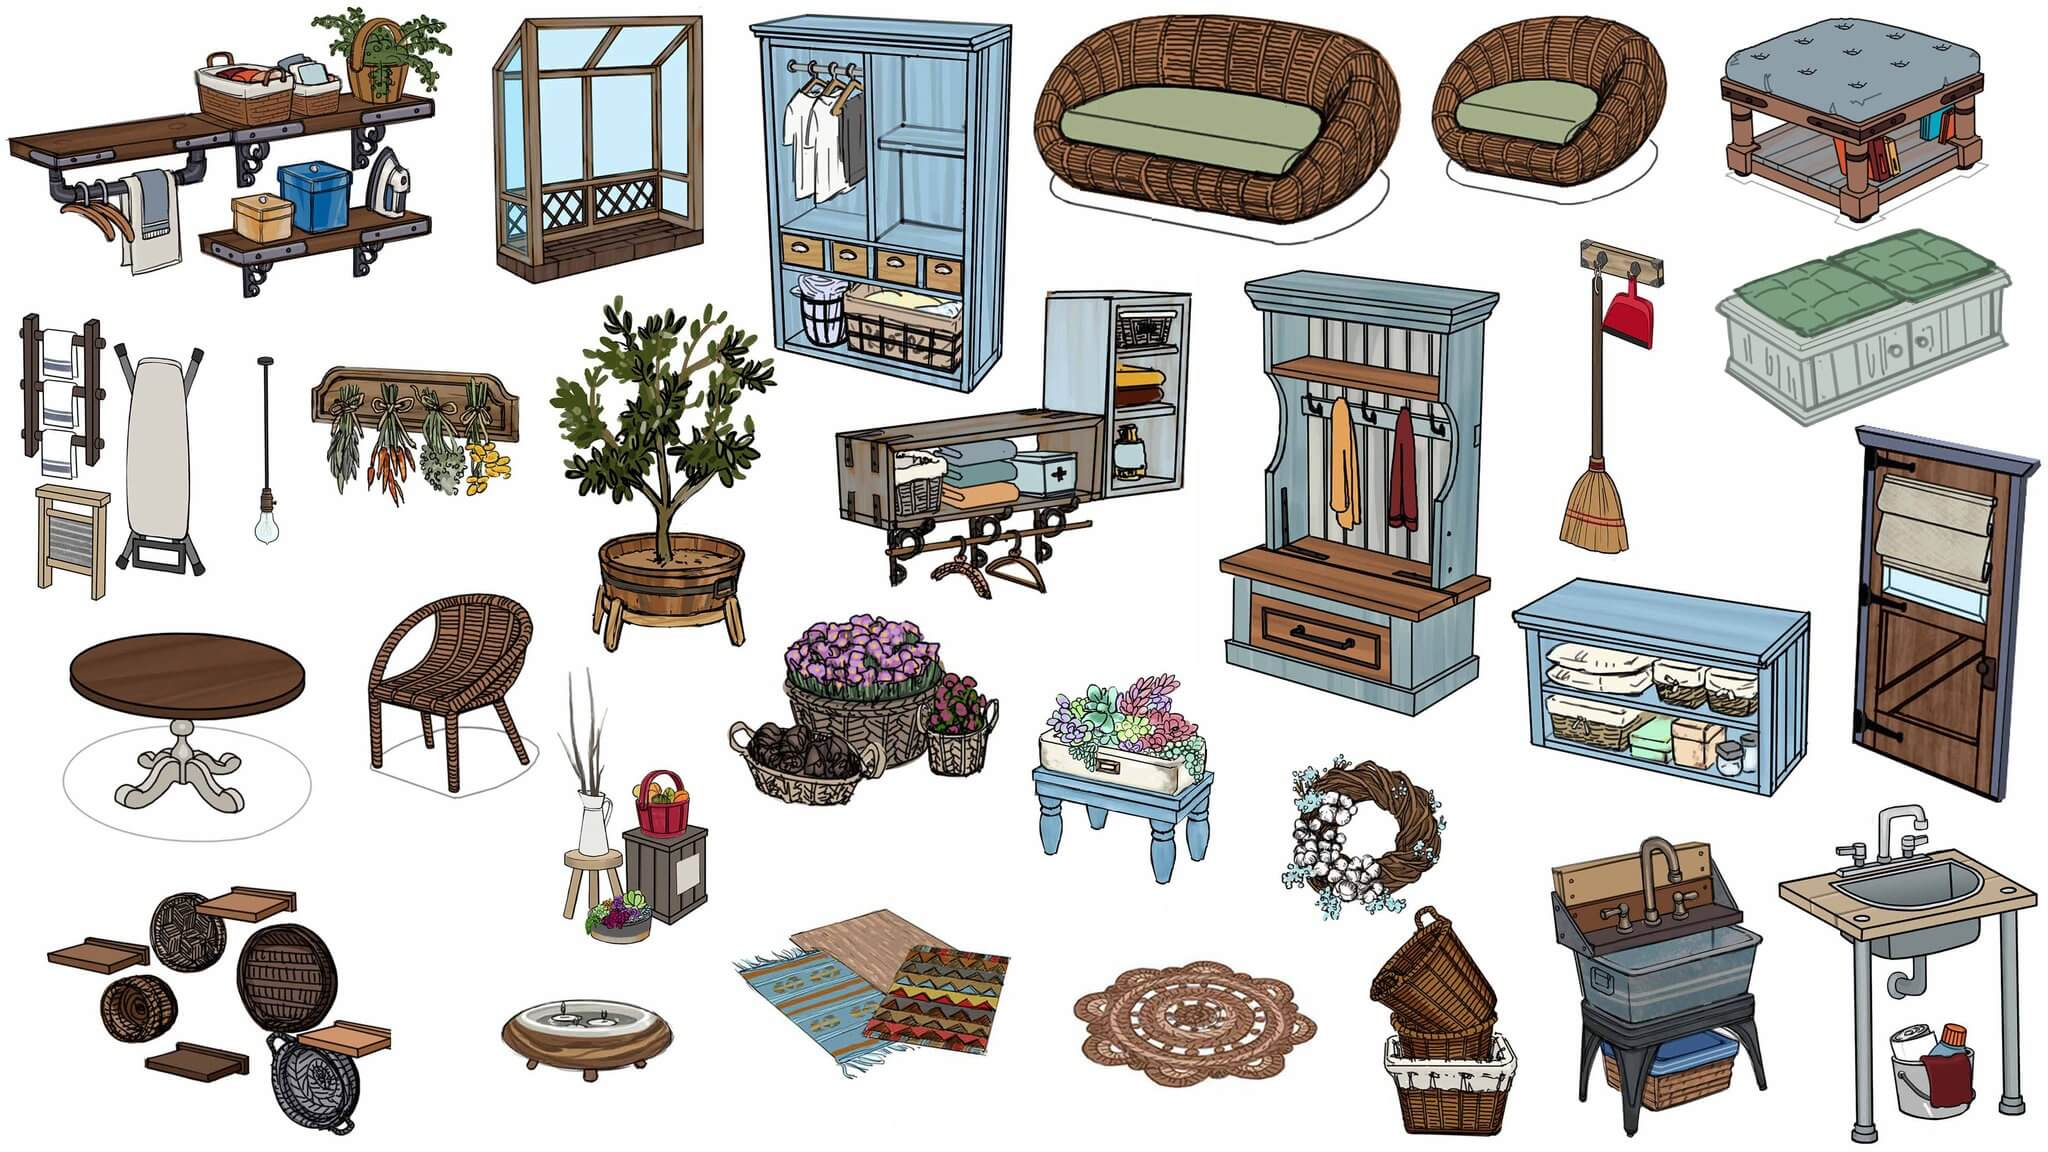 Sims-4-Waschtag-Accessoires-Objekte-Artwork